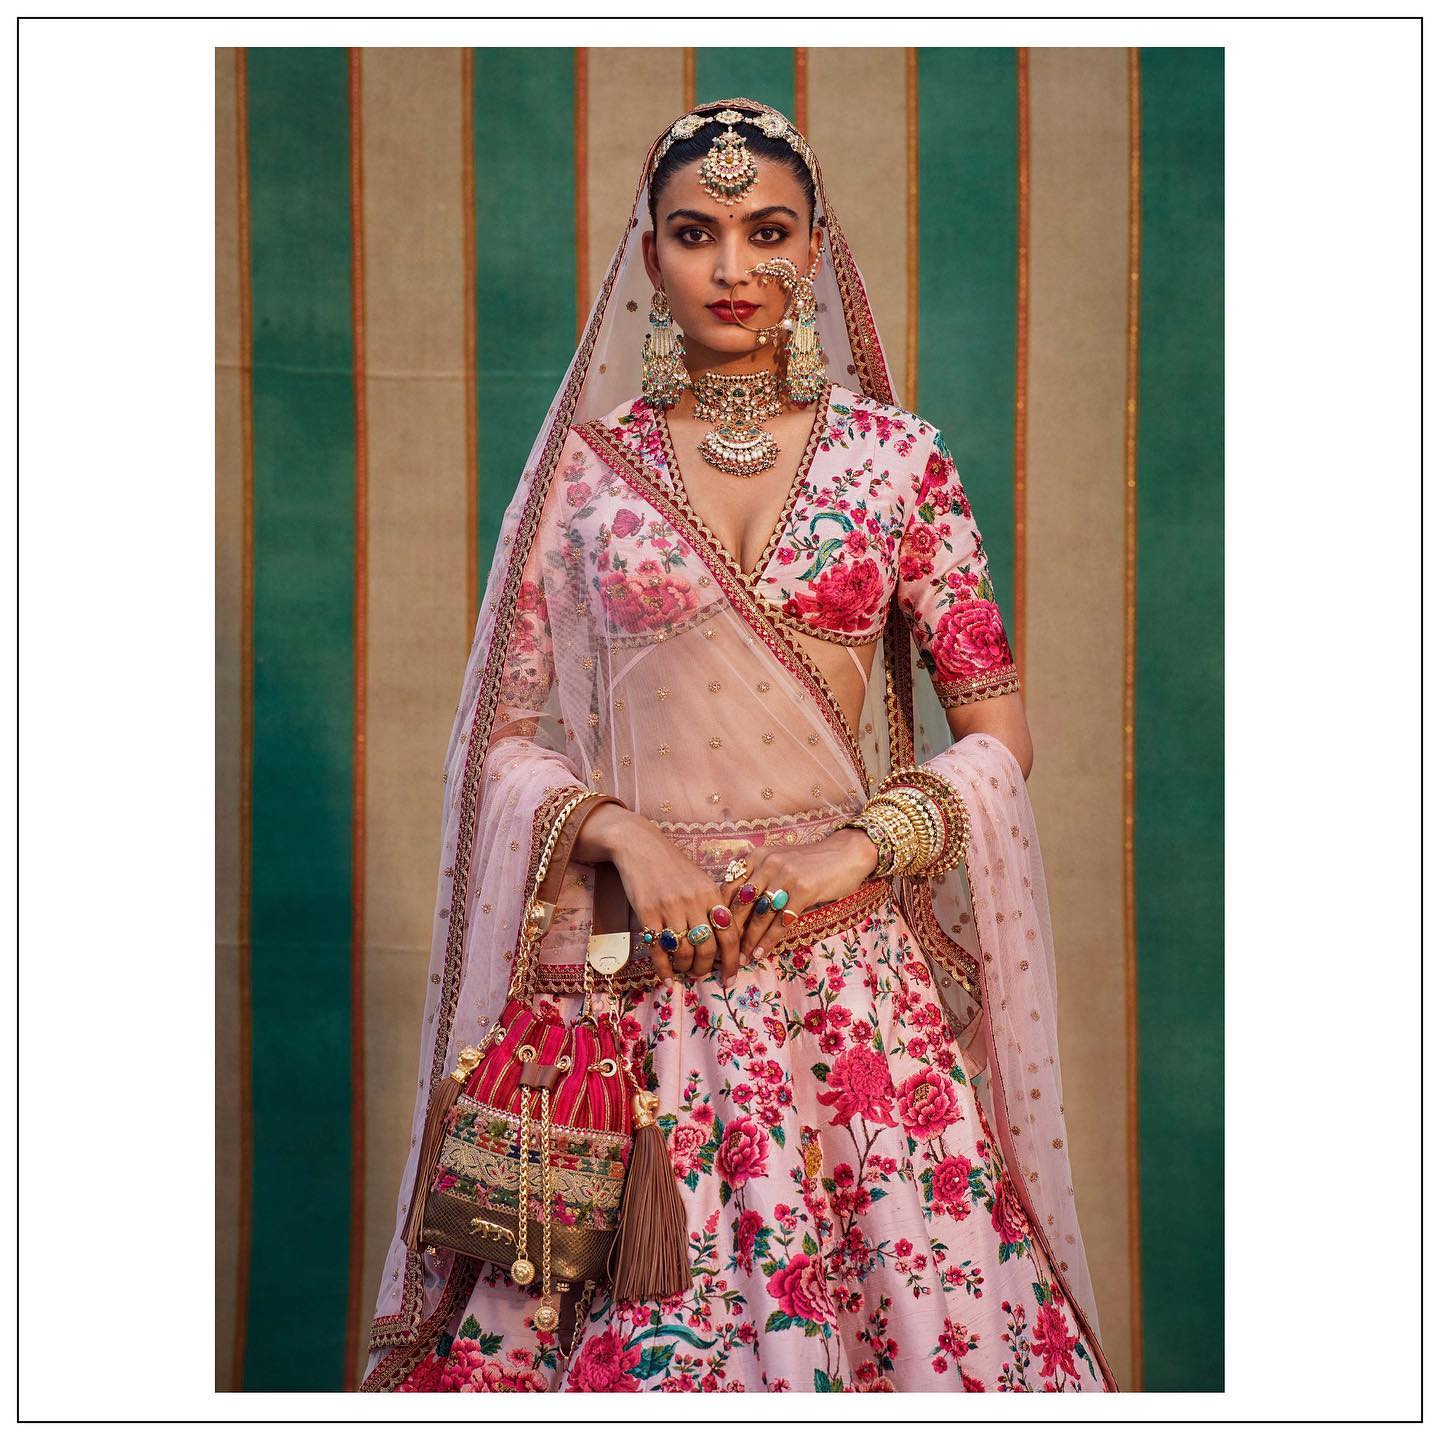 The Sabyasachi 2021 Collection. Stunning blush pink floral bridal lehenga set.  For all product related queries please email  at customerservice@sabyasachi.com or contact  retail stores directly. 2021-07-27